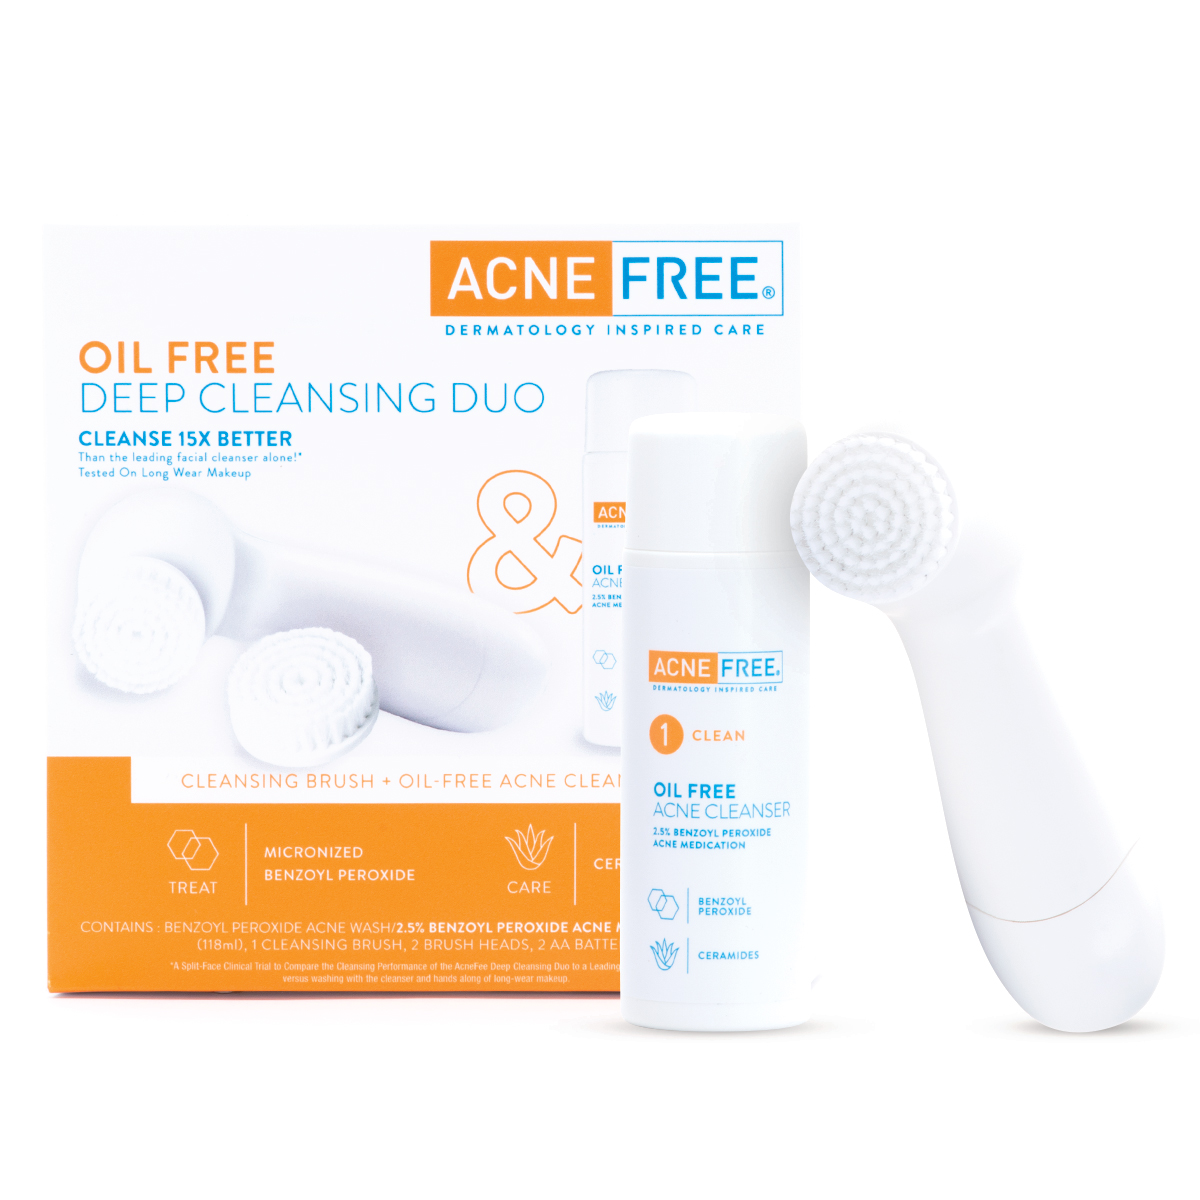 Acnefree Deep Cleansing Duo Brush Oil Free Acne Face Cleanser